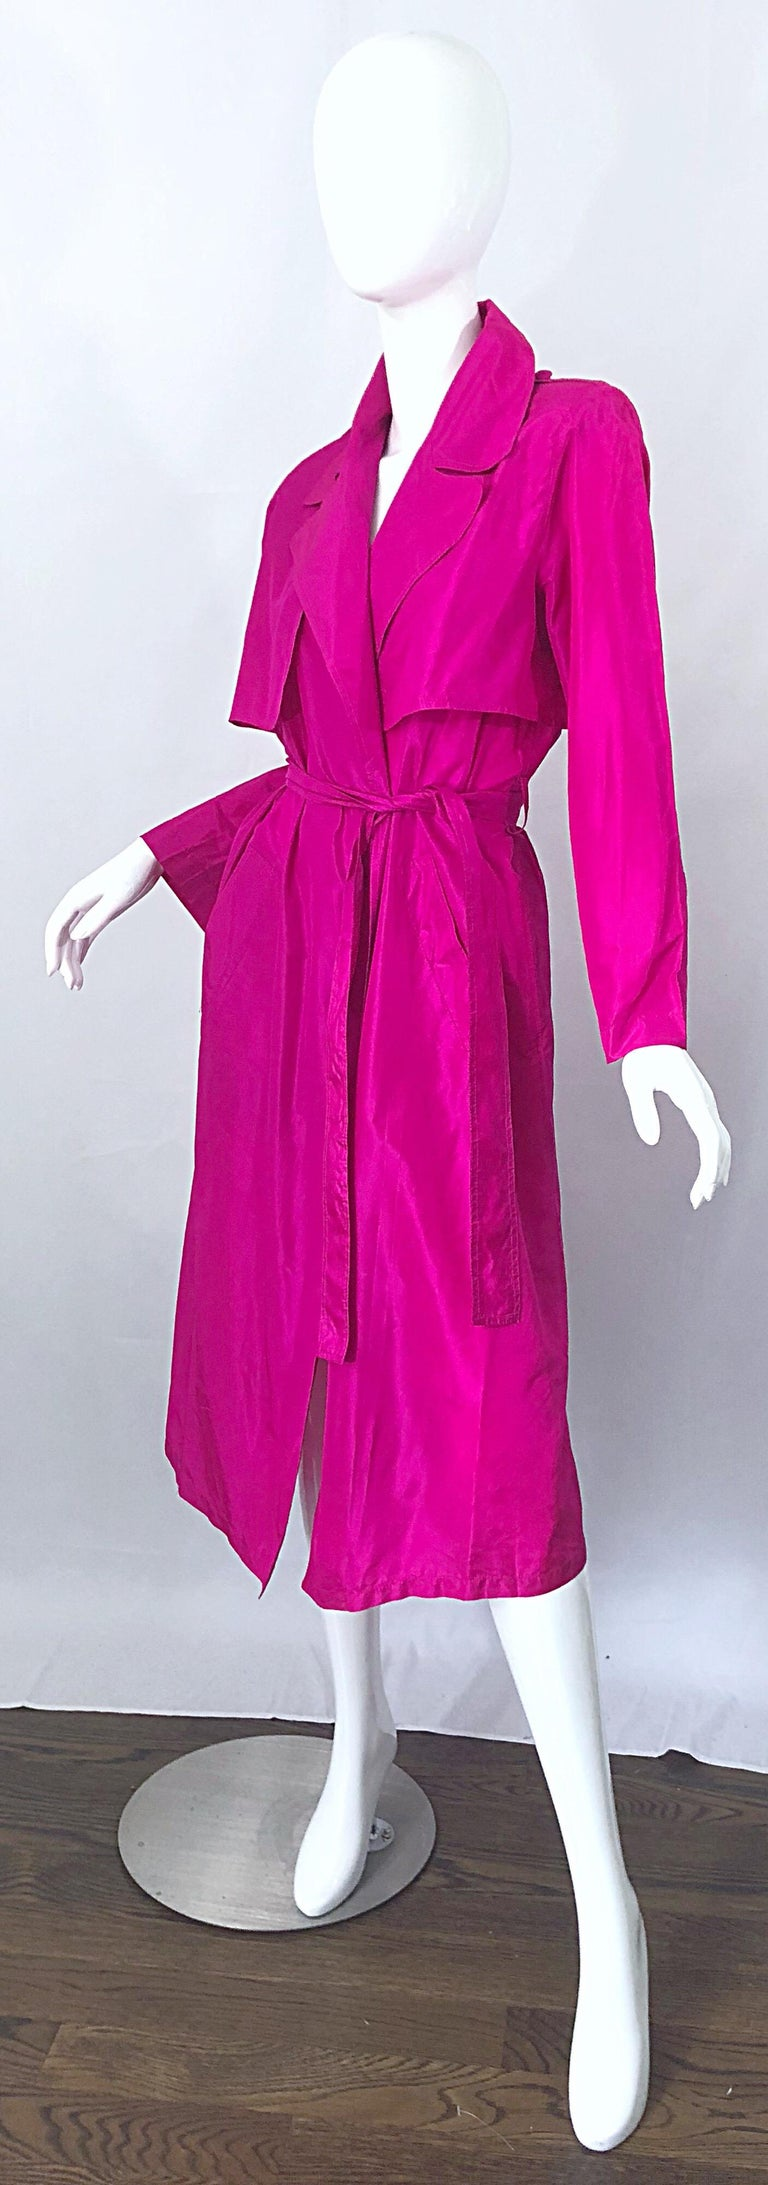 Vintage Vicky Tiel Couture 80s Hot Pink Fuchsia Silk 1980s Trecnch Jacket Dress For Sale 1